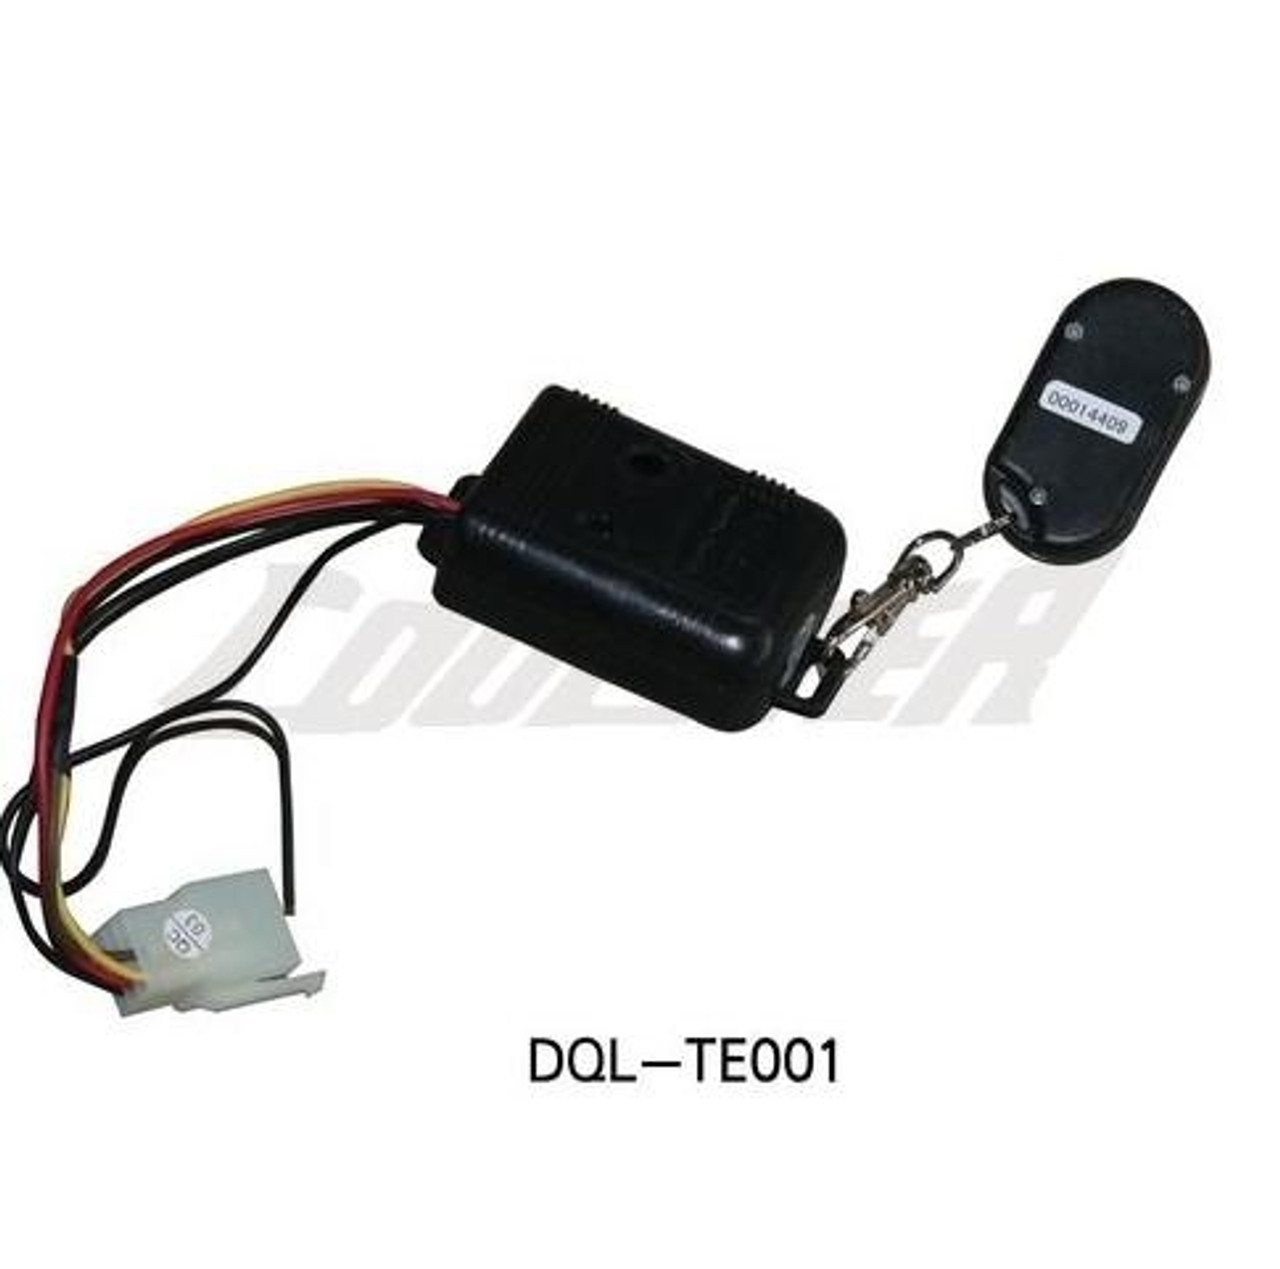 ALARM AND REMOTE CONTROL FOR COOLSTER ATV